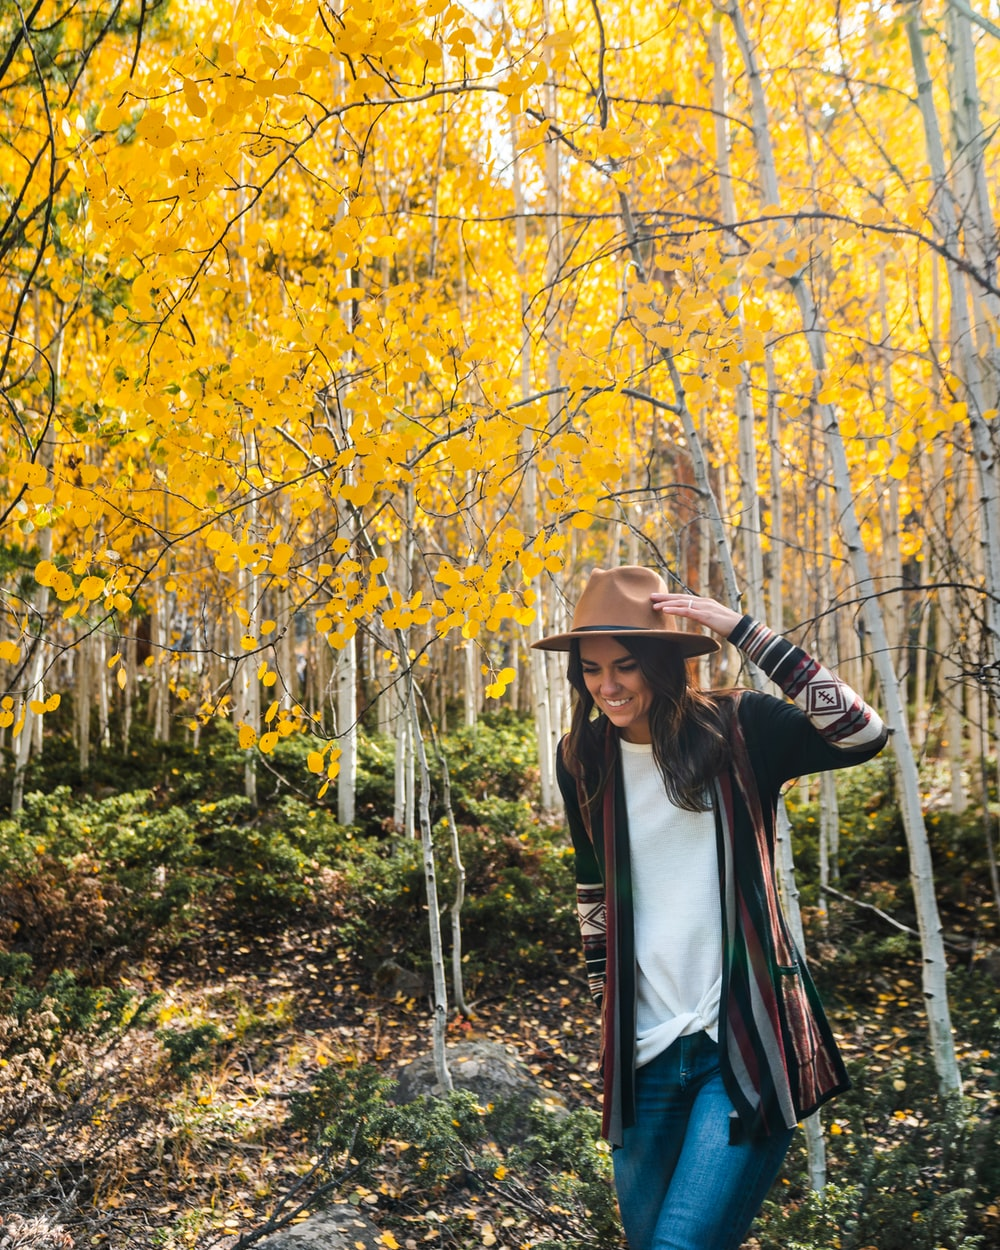 woman in white long sleeve shirt and brown hat standing near yellow leaf trees during daytime